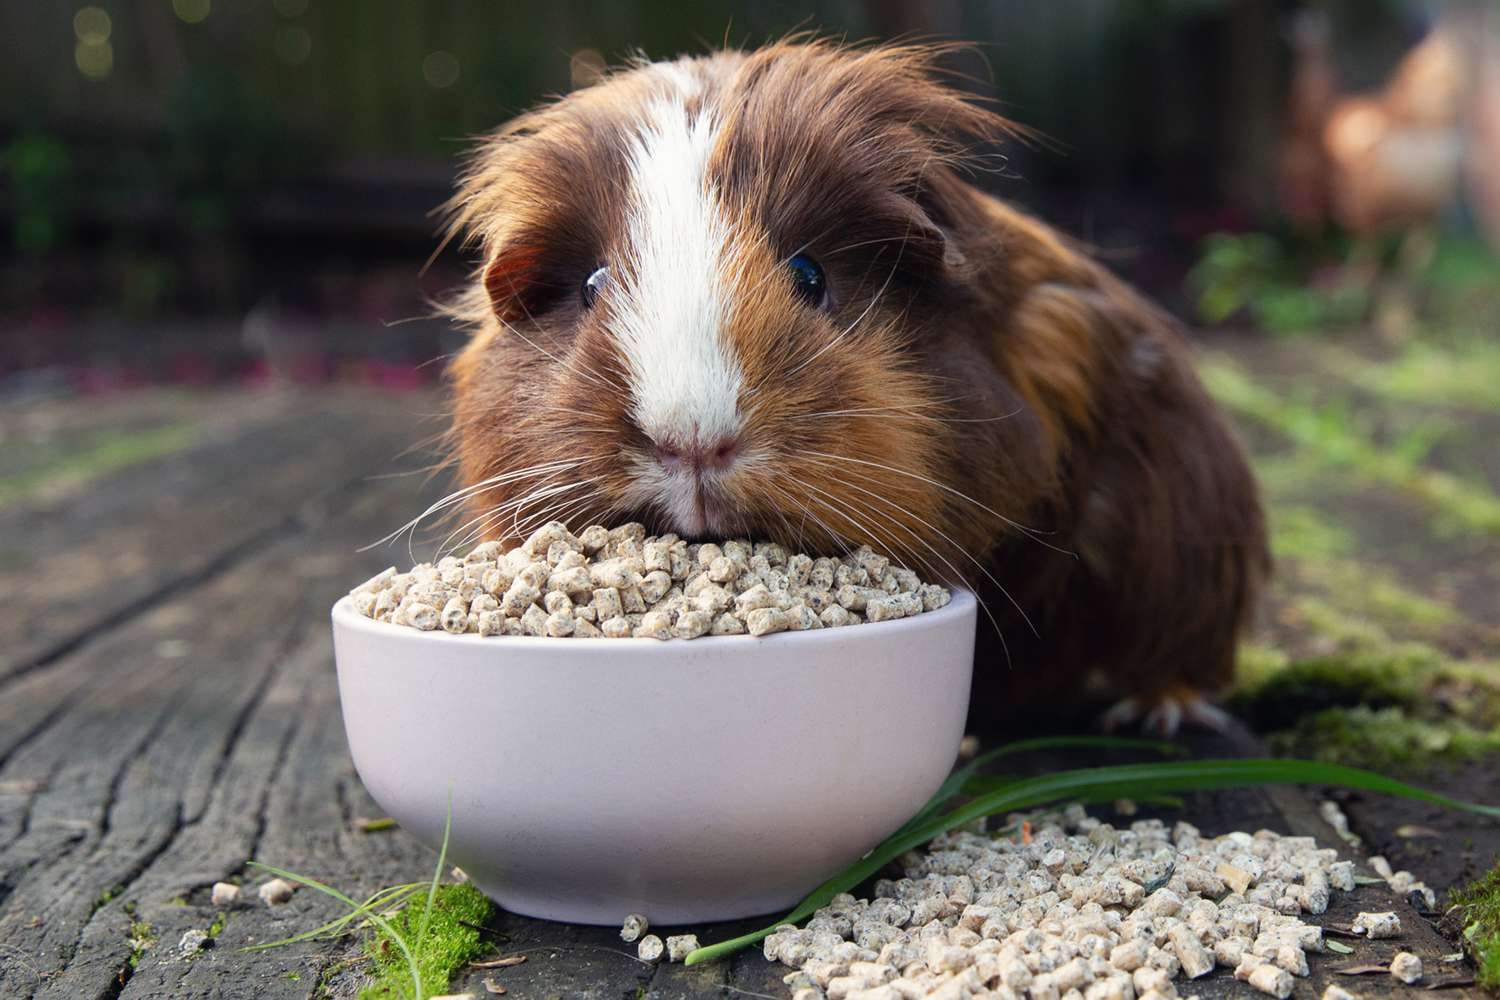 Brown and white guinea pig eating special guinea pig pellet food from white bowl